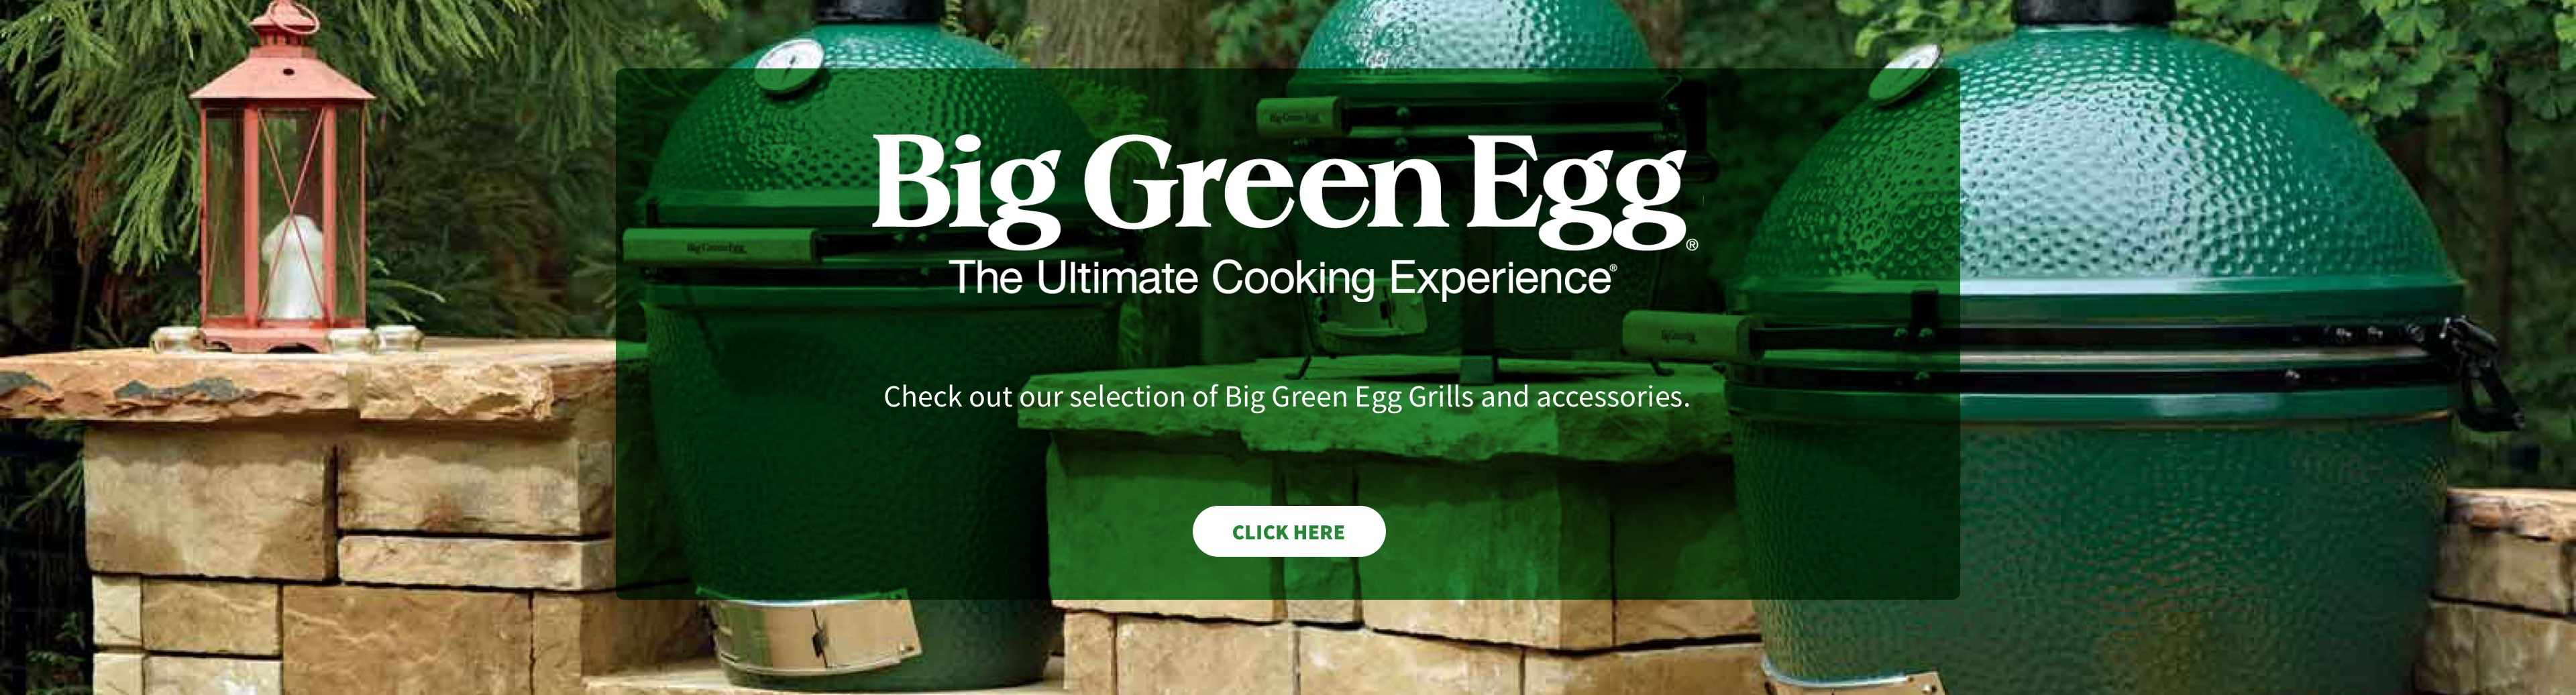 More about Big Green Egg at Niehaus Lumber